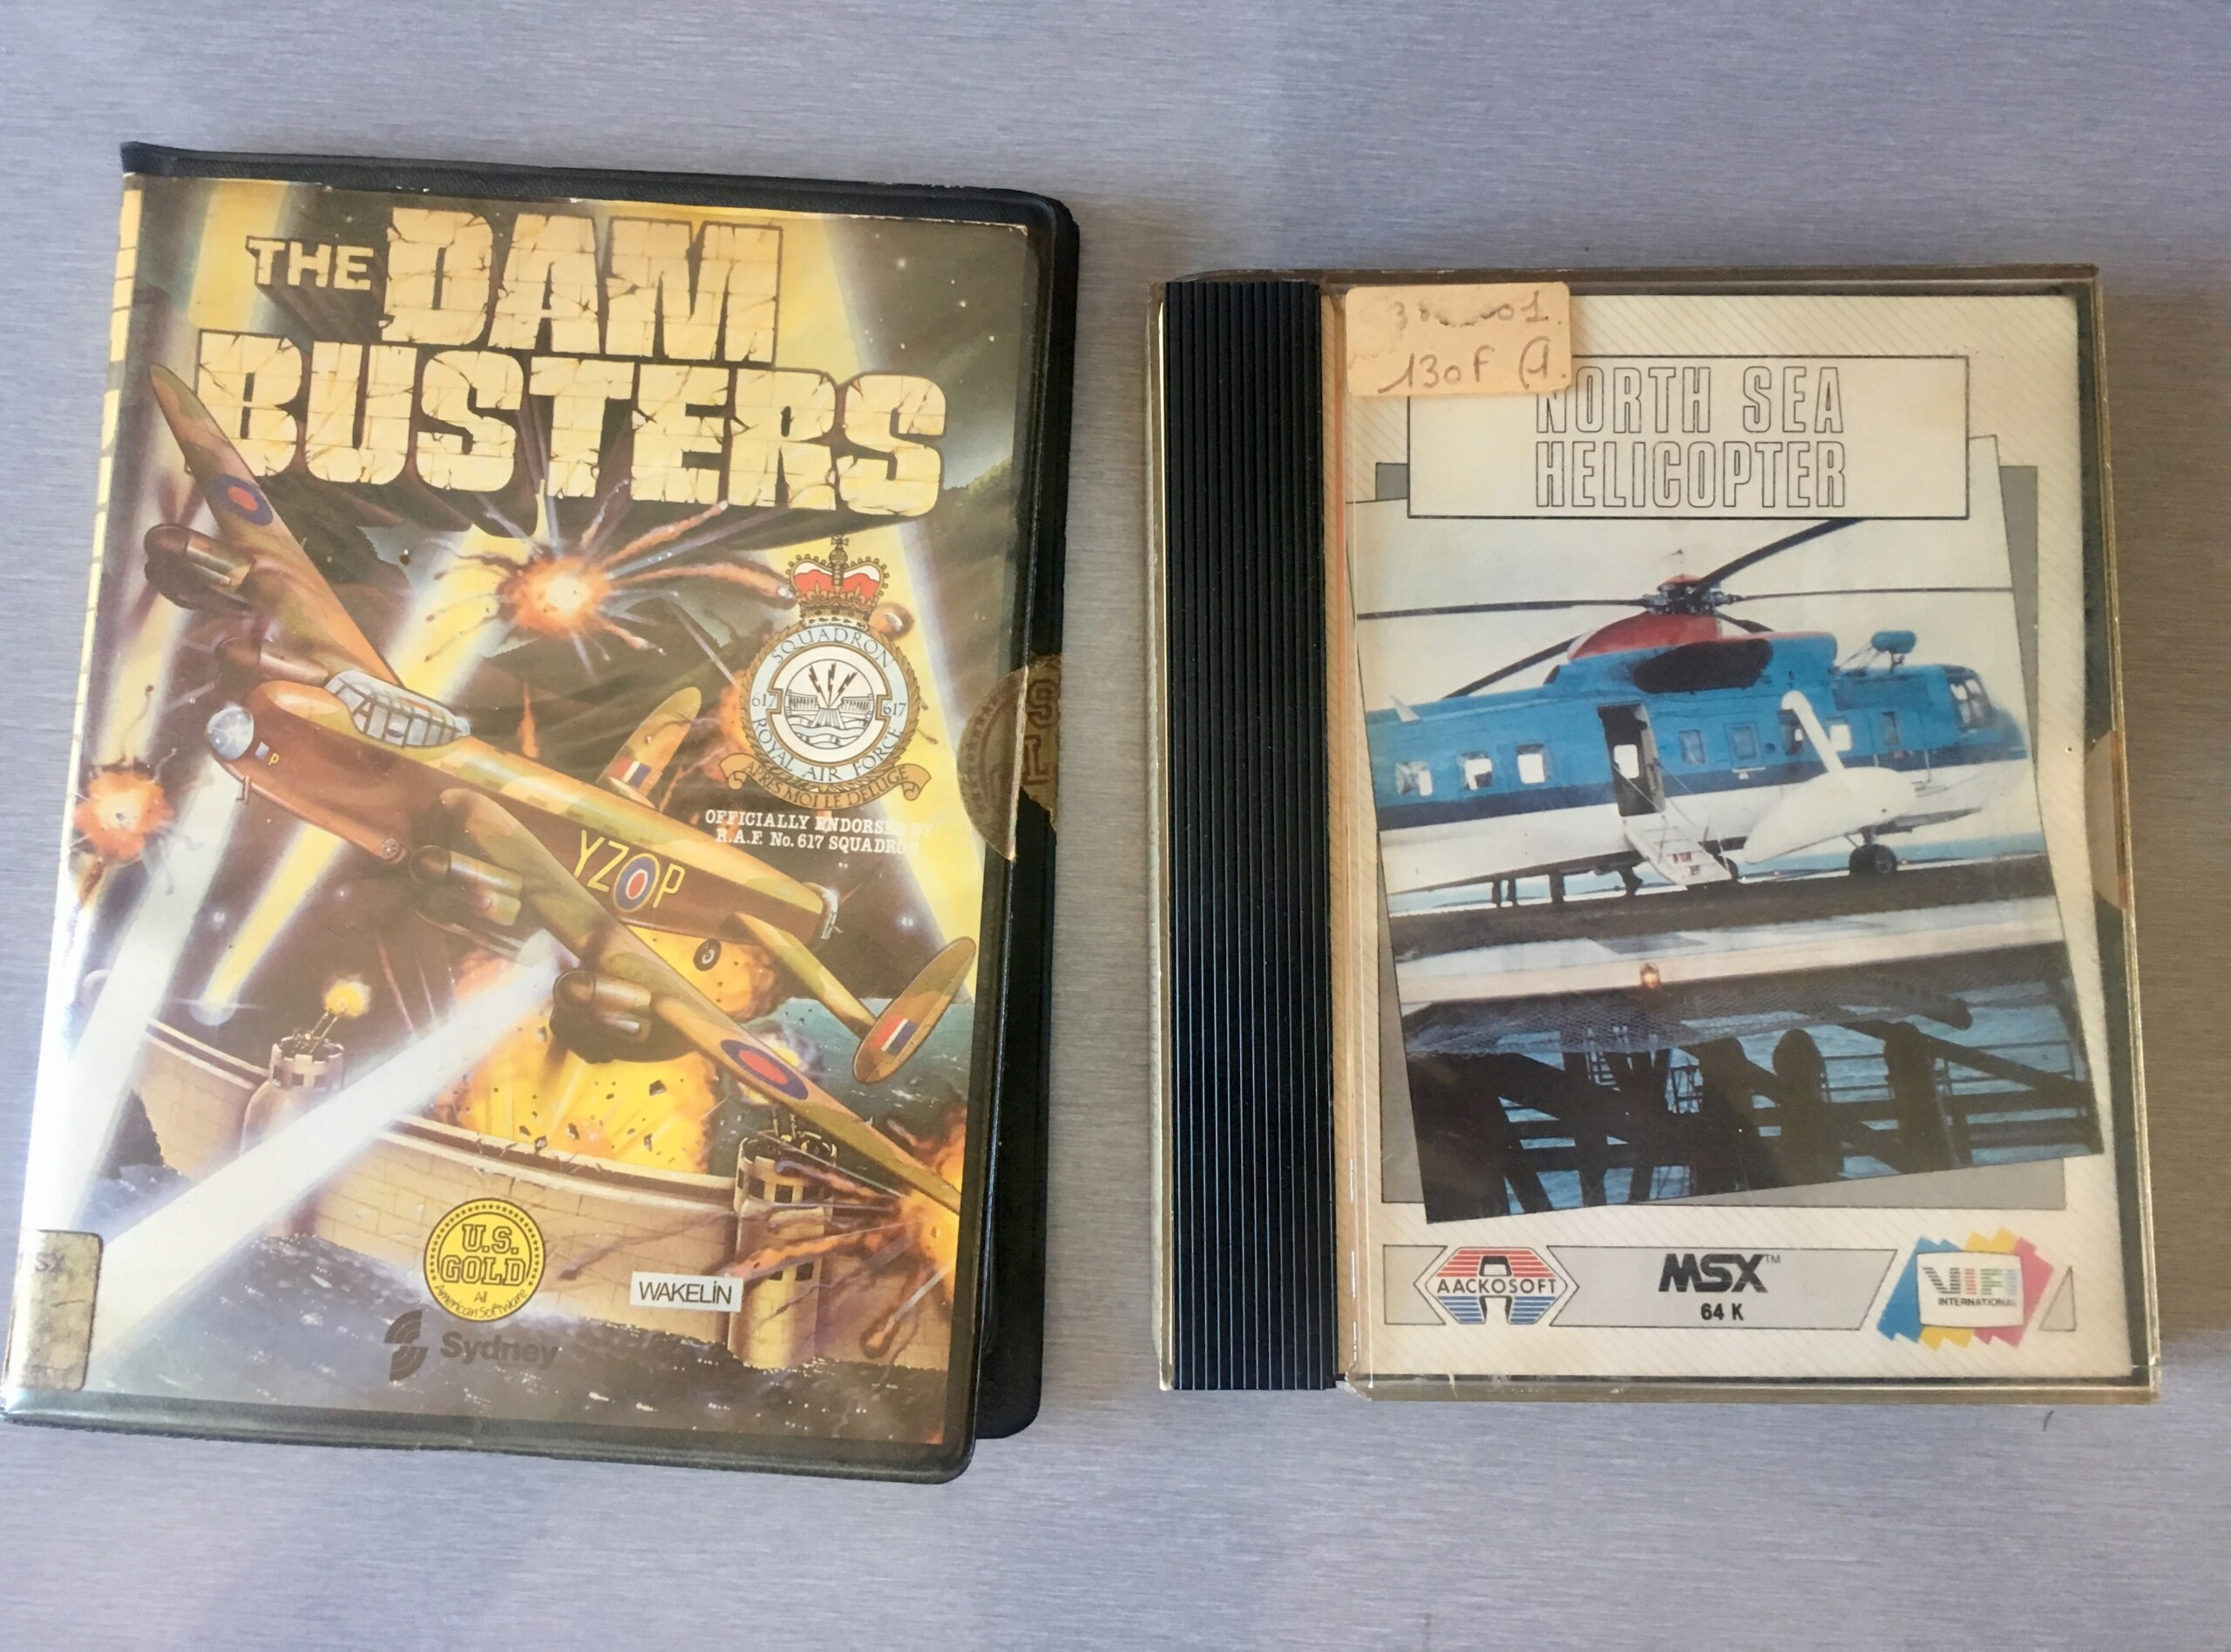 [EST] jeux MSX k7 complets: North Sea Helicopter (FR) + Dam Busters Img_3716